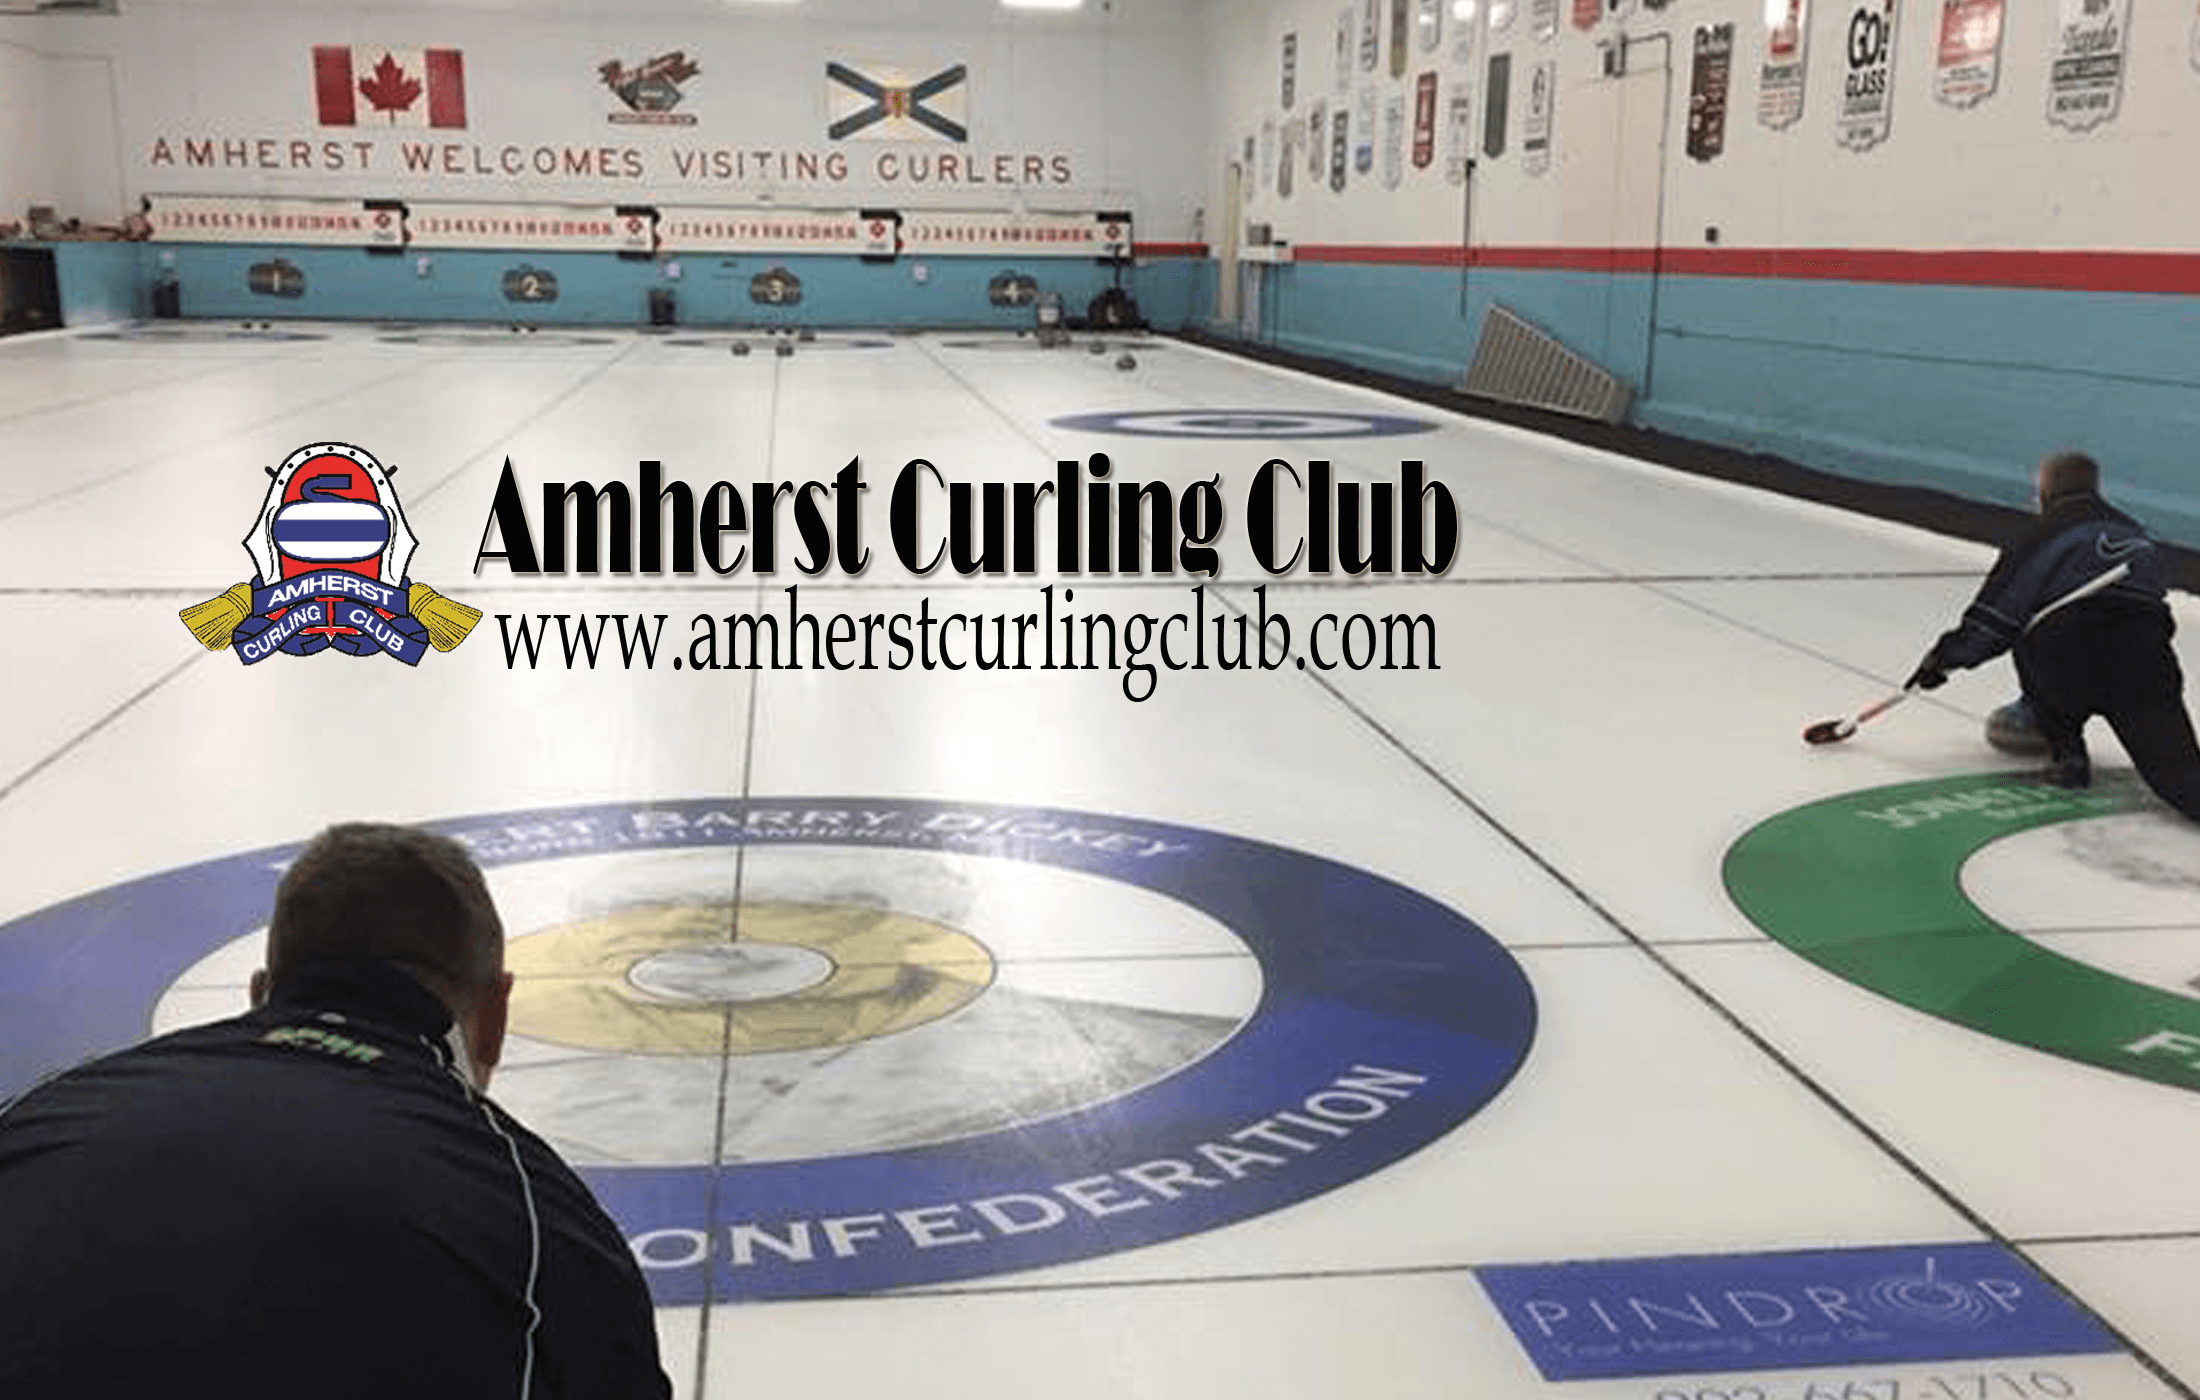 Amherst Curling Club